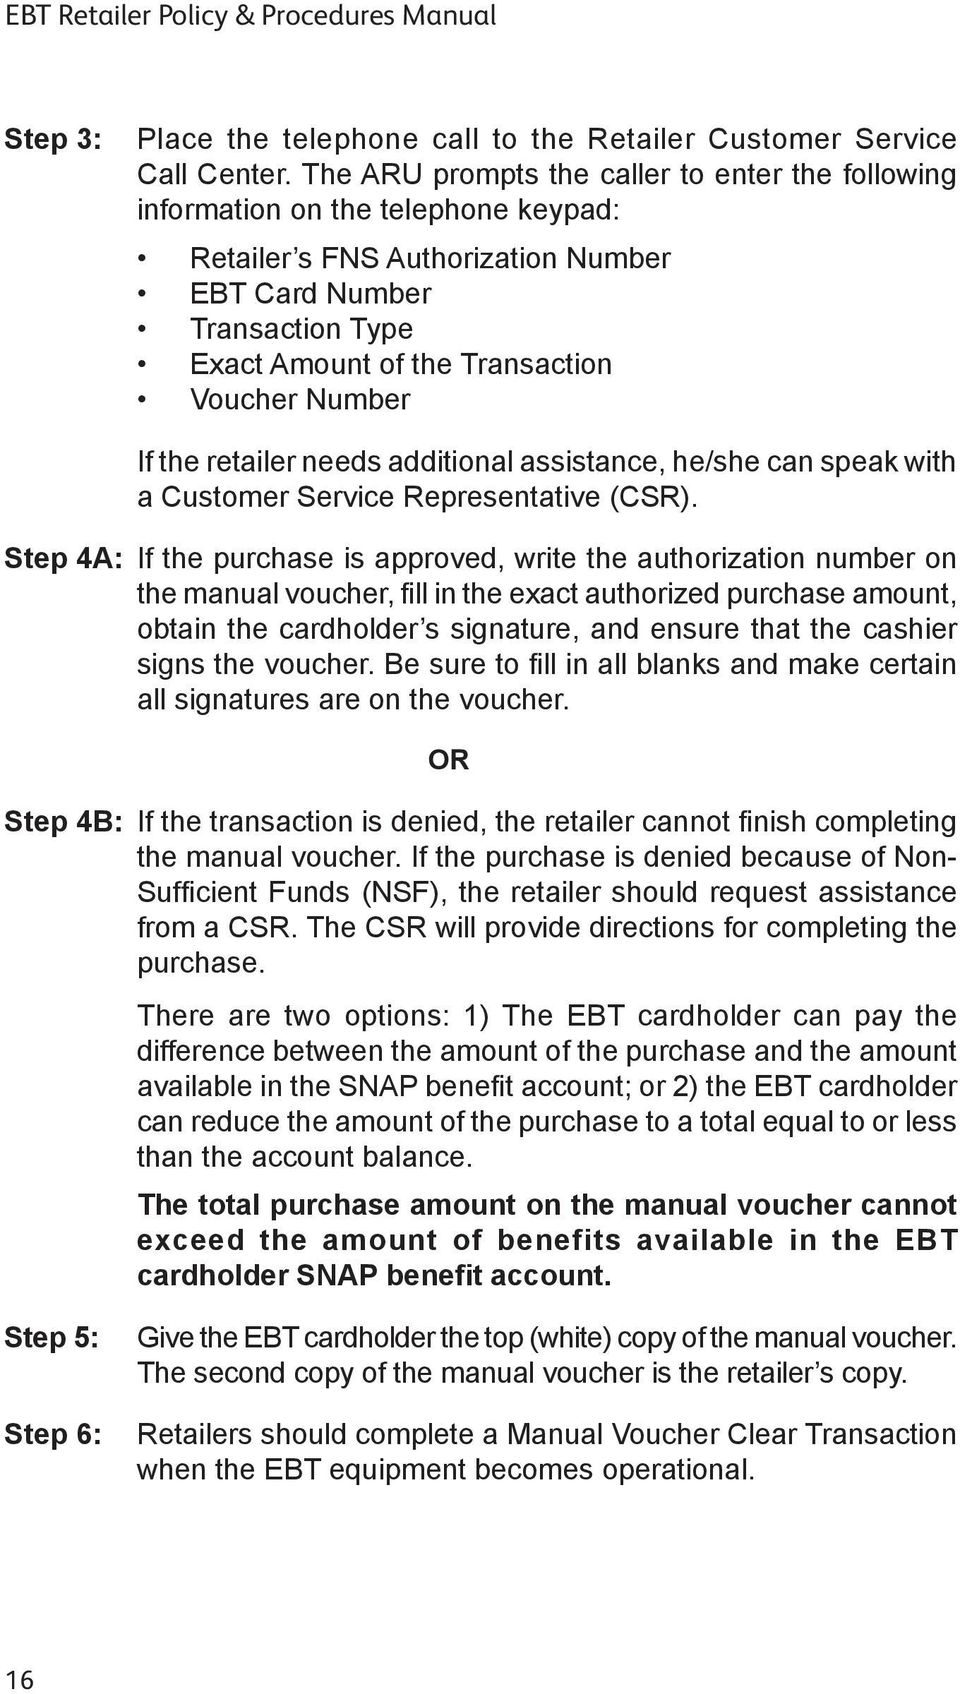 Customer service manual for retail array retailer policy u0026 procedures manual for ebt program using omni 3200 rh docplayer net fandeluxe Choice Image